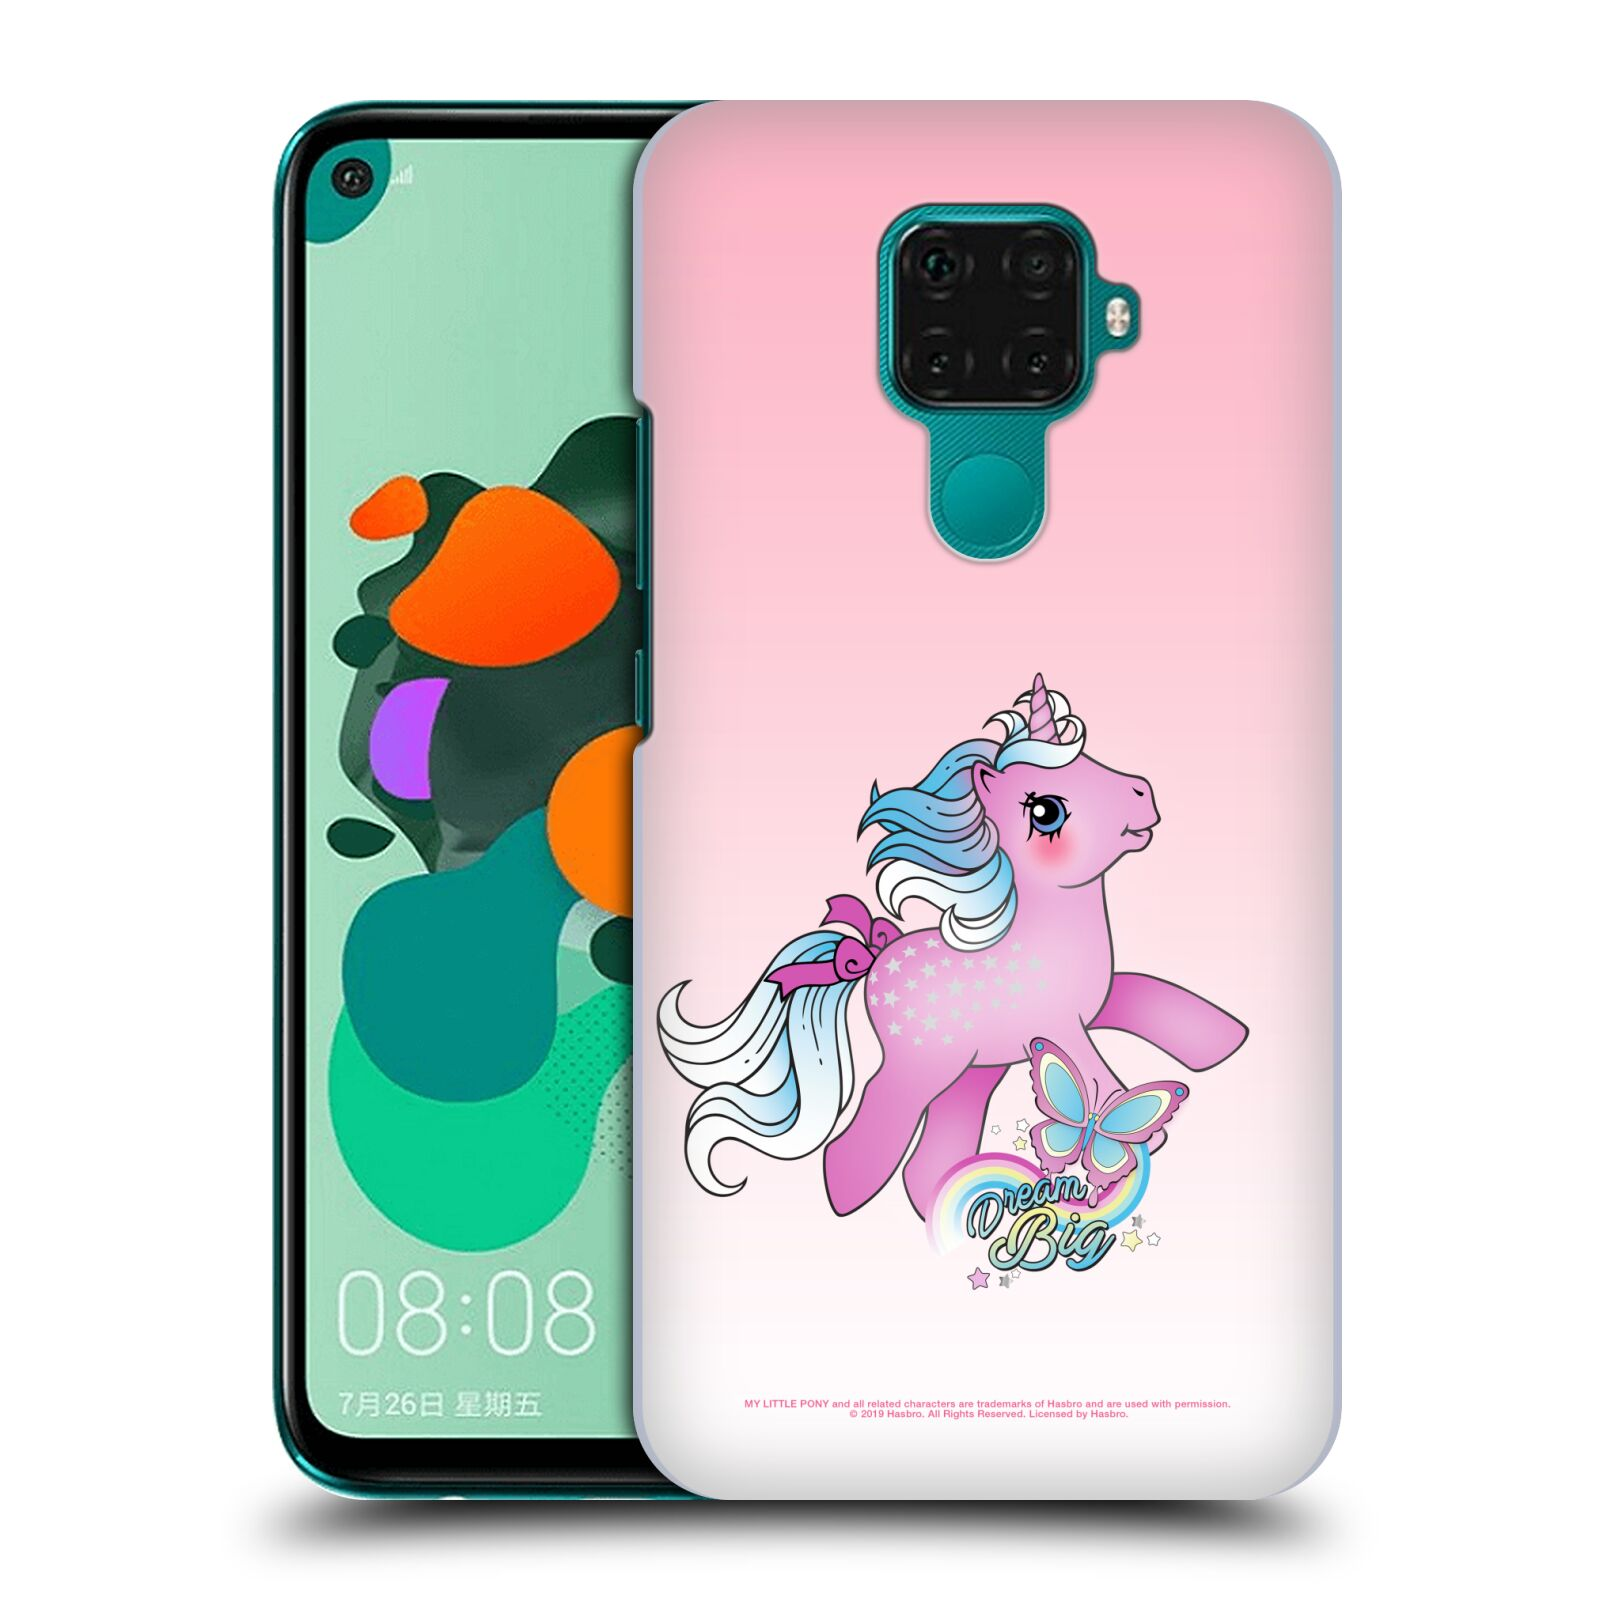 Official My Little Pony Classic Off My Cloud Dream Big Case for Huawei Nova 5i Pro/Mate 30 Lite